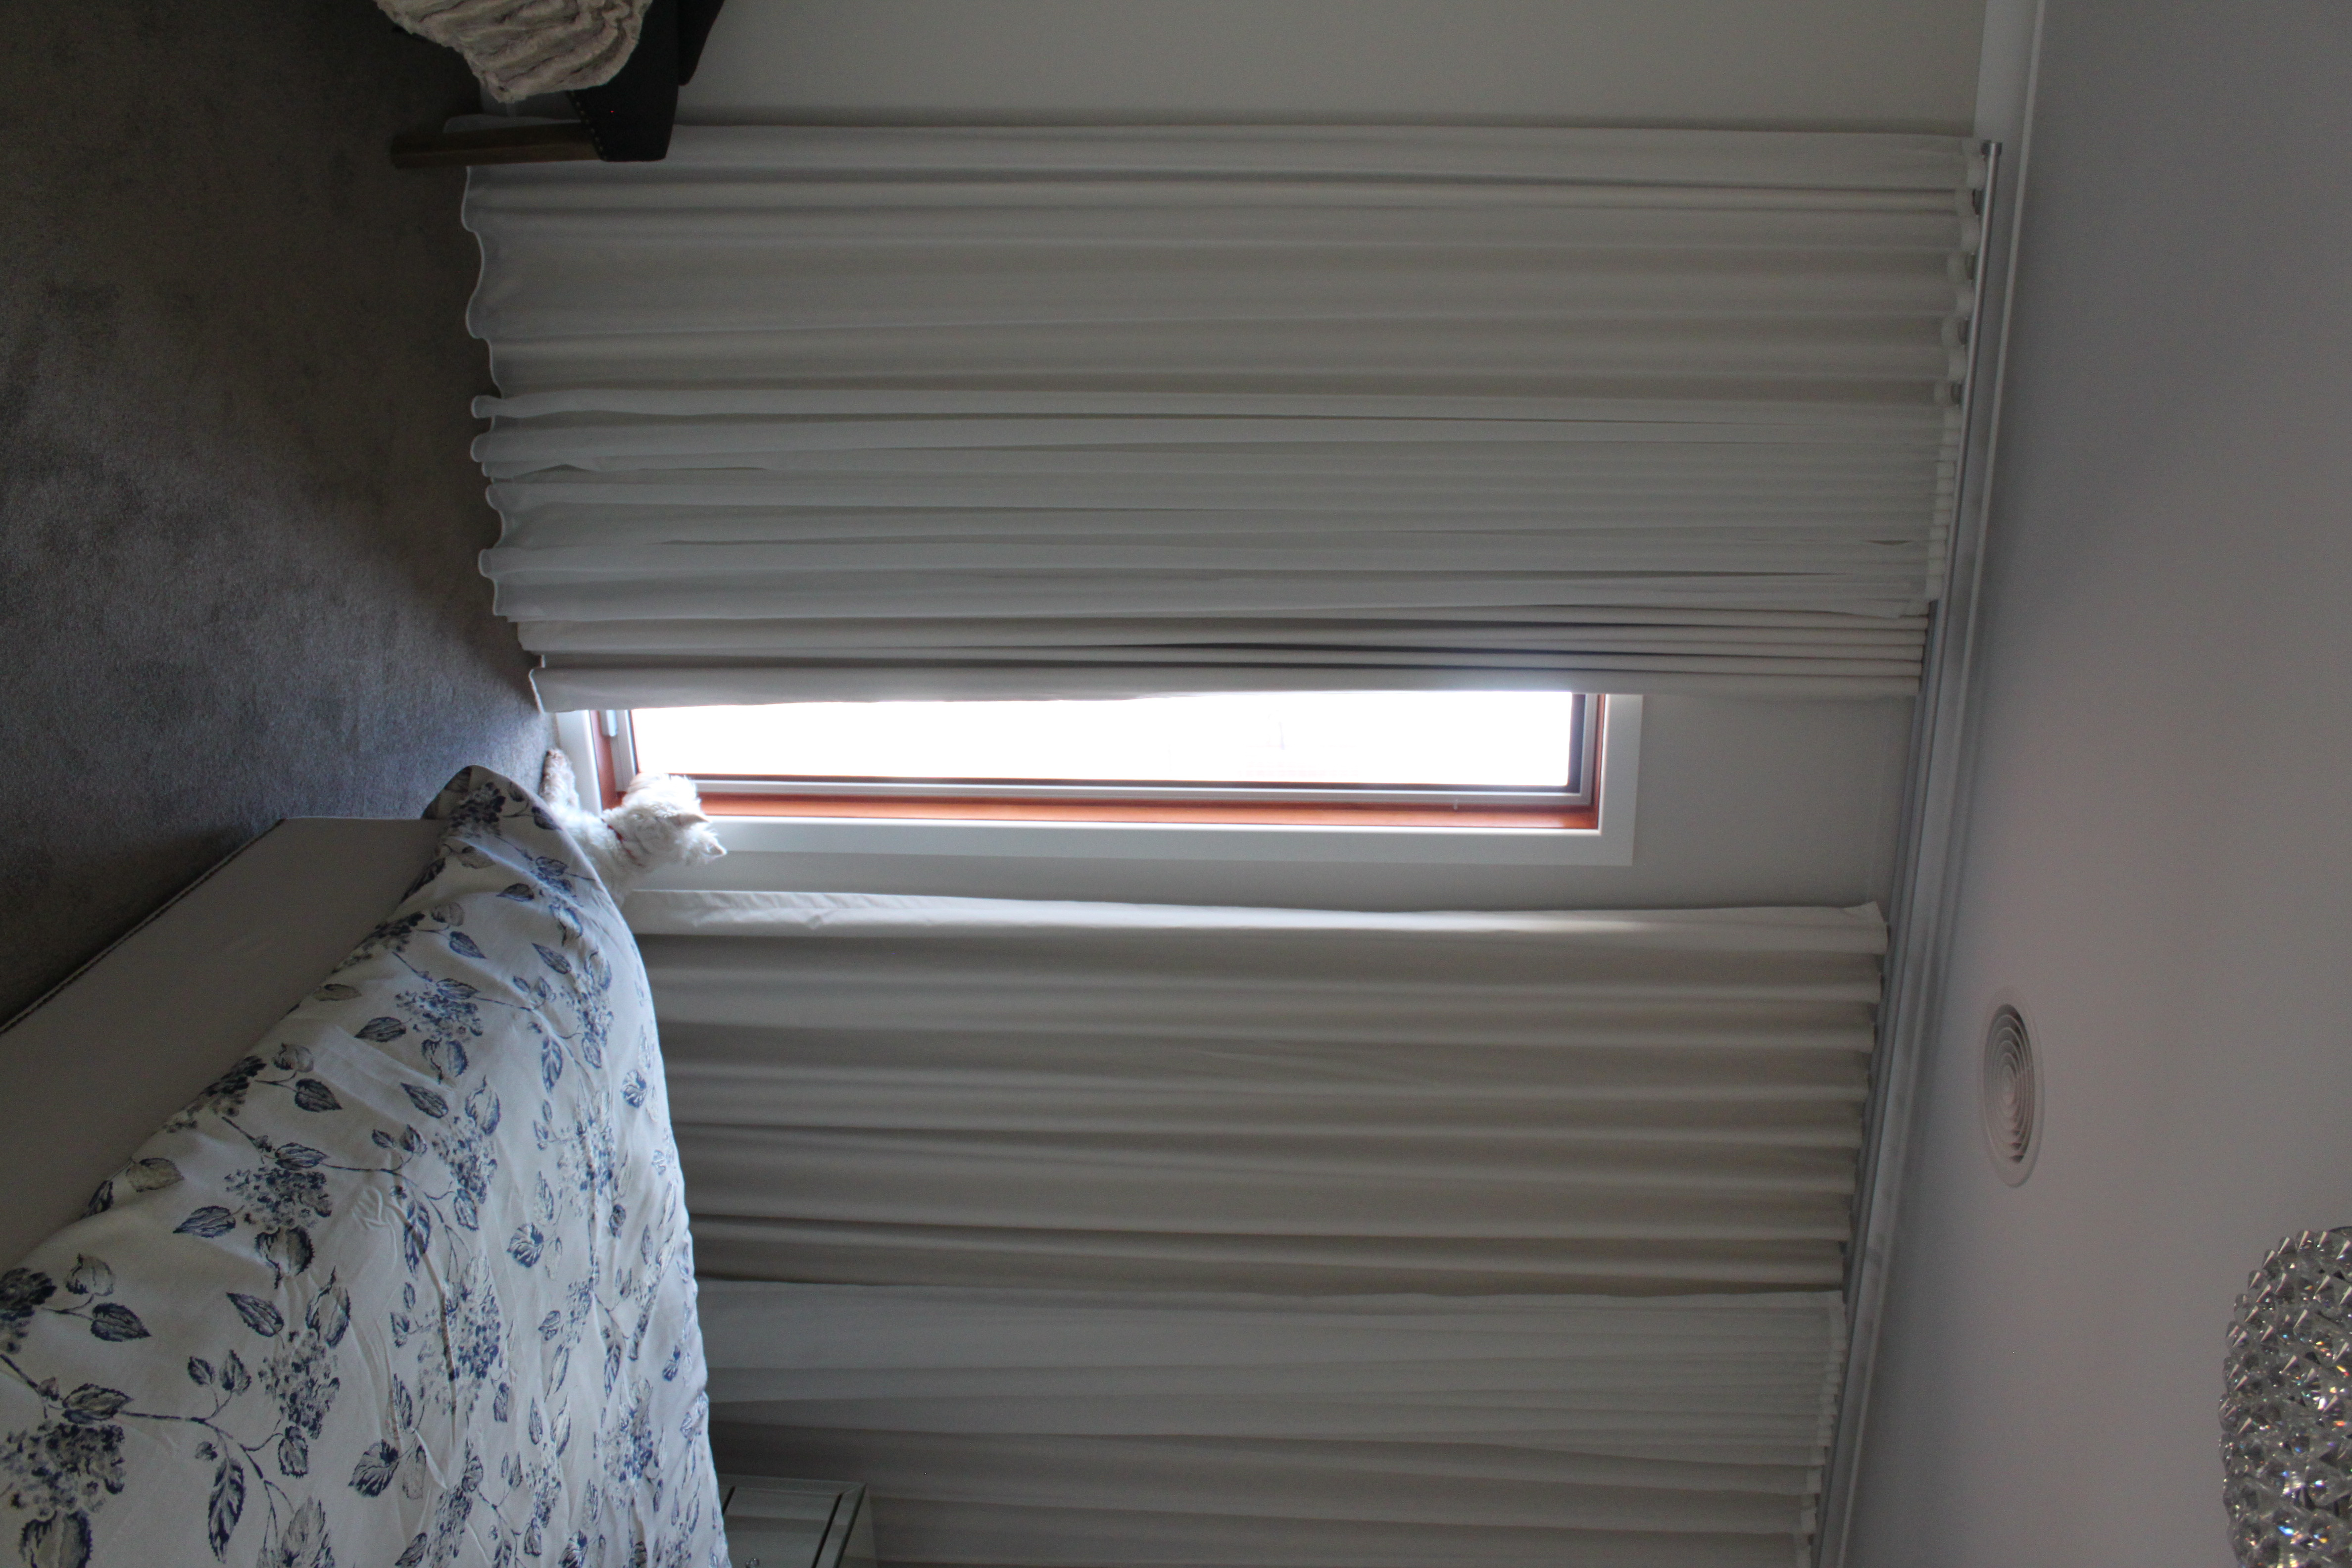 Curtains - Dual S-fold curtains